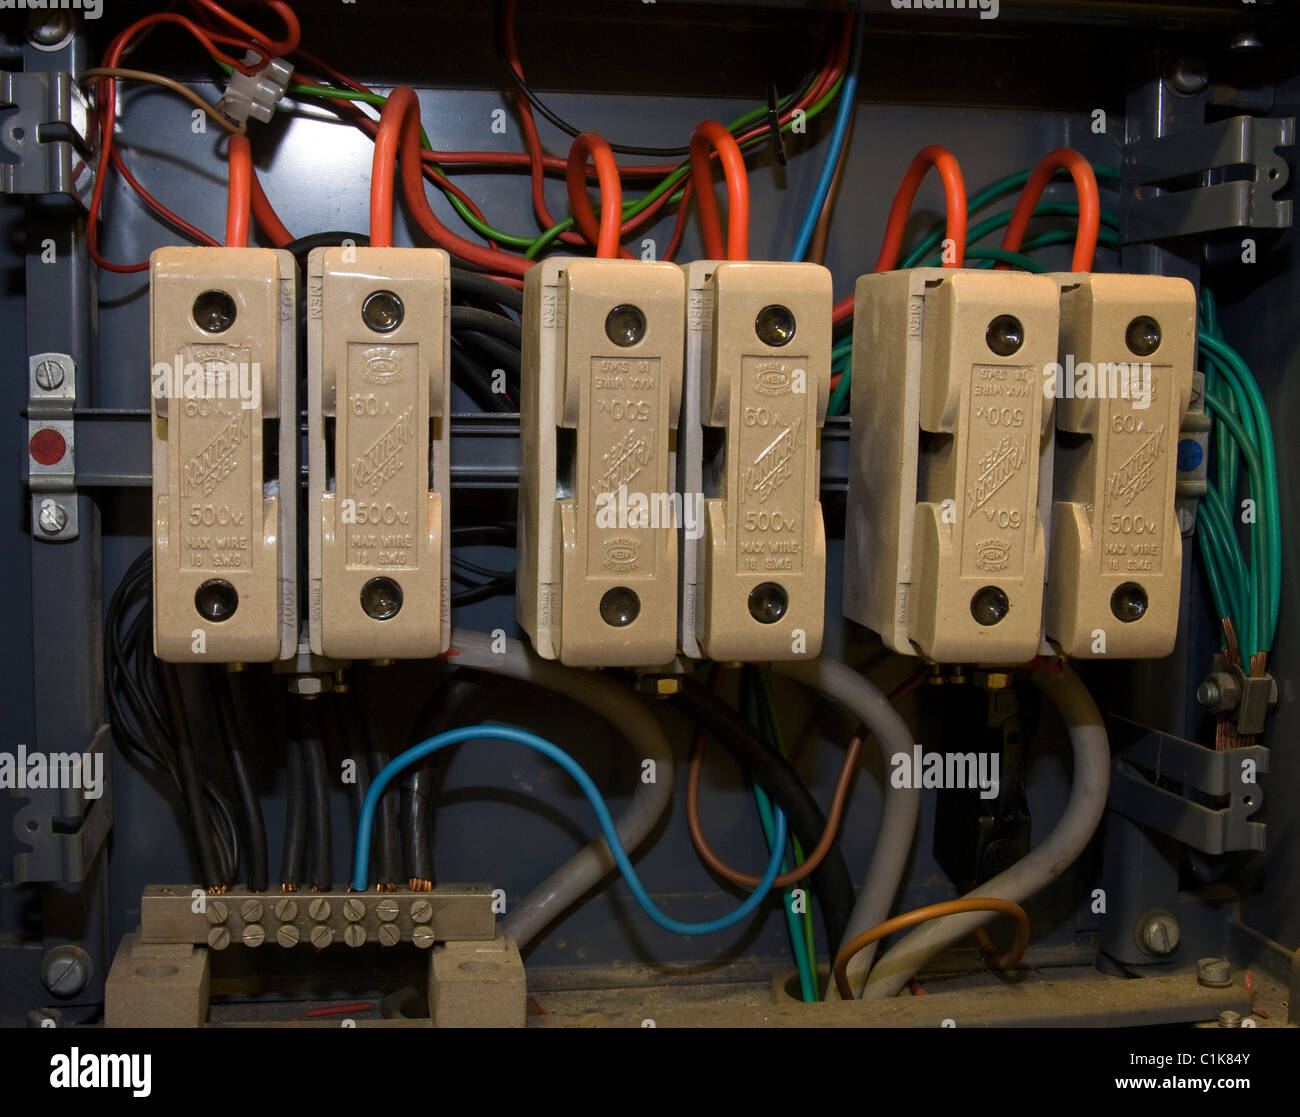 hight resolution of electricity mains fuse old type ceramic domestic connectors fuse board stock image